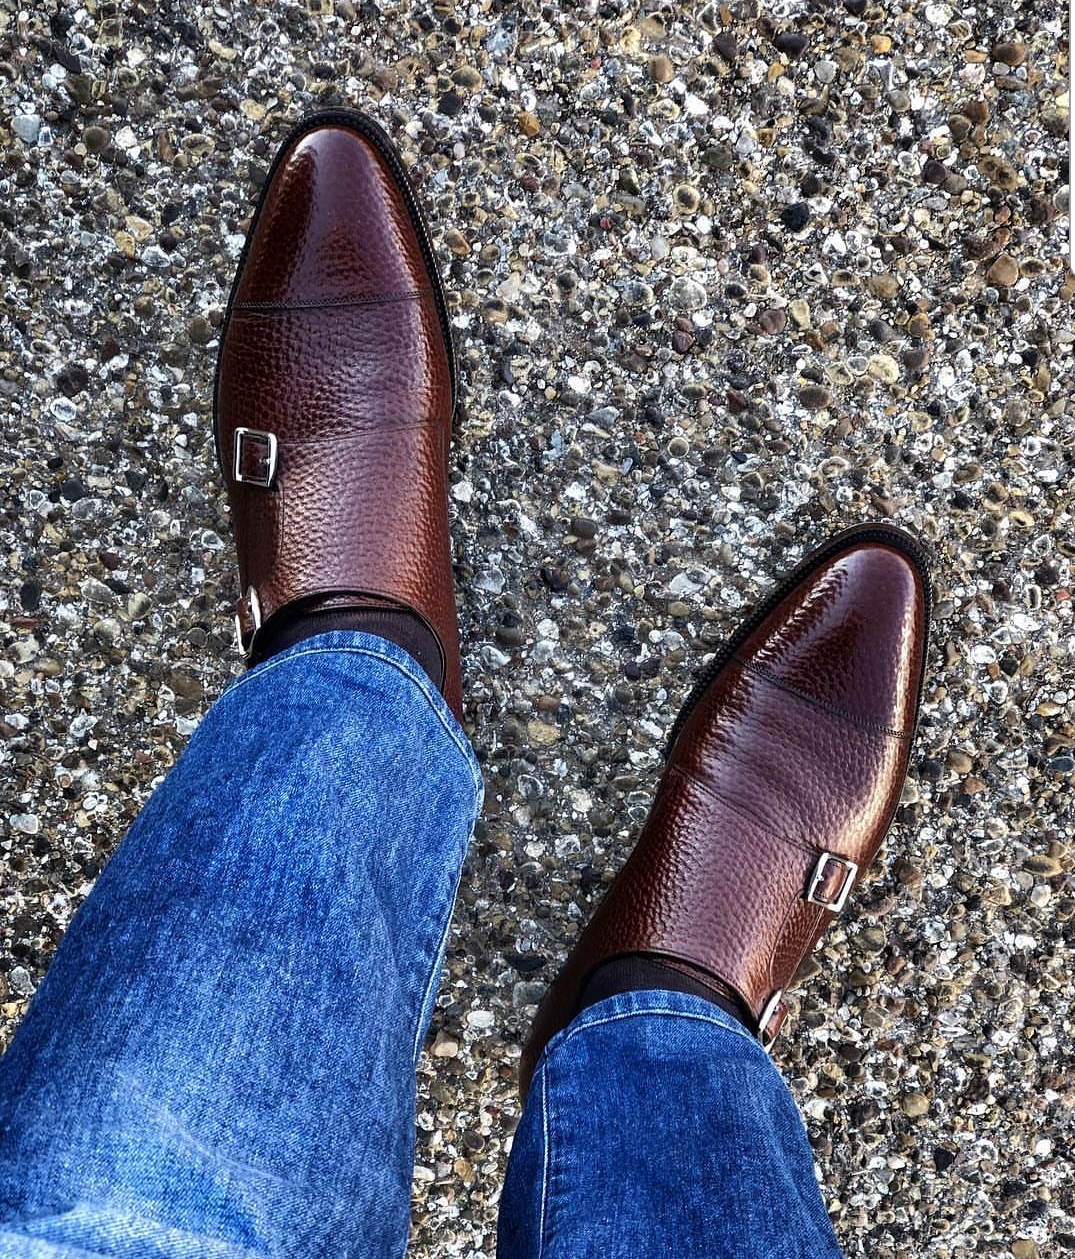 Pet Peeves In The Shoe Industry Part 6 - Men Who Can't Fathom Taking a Different Size